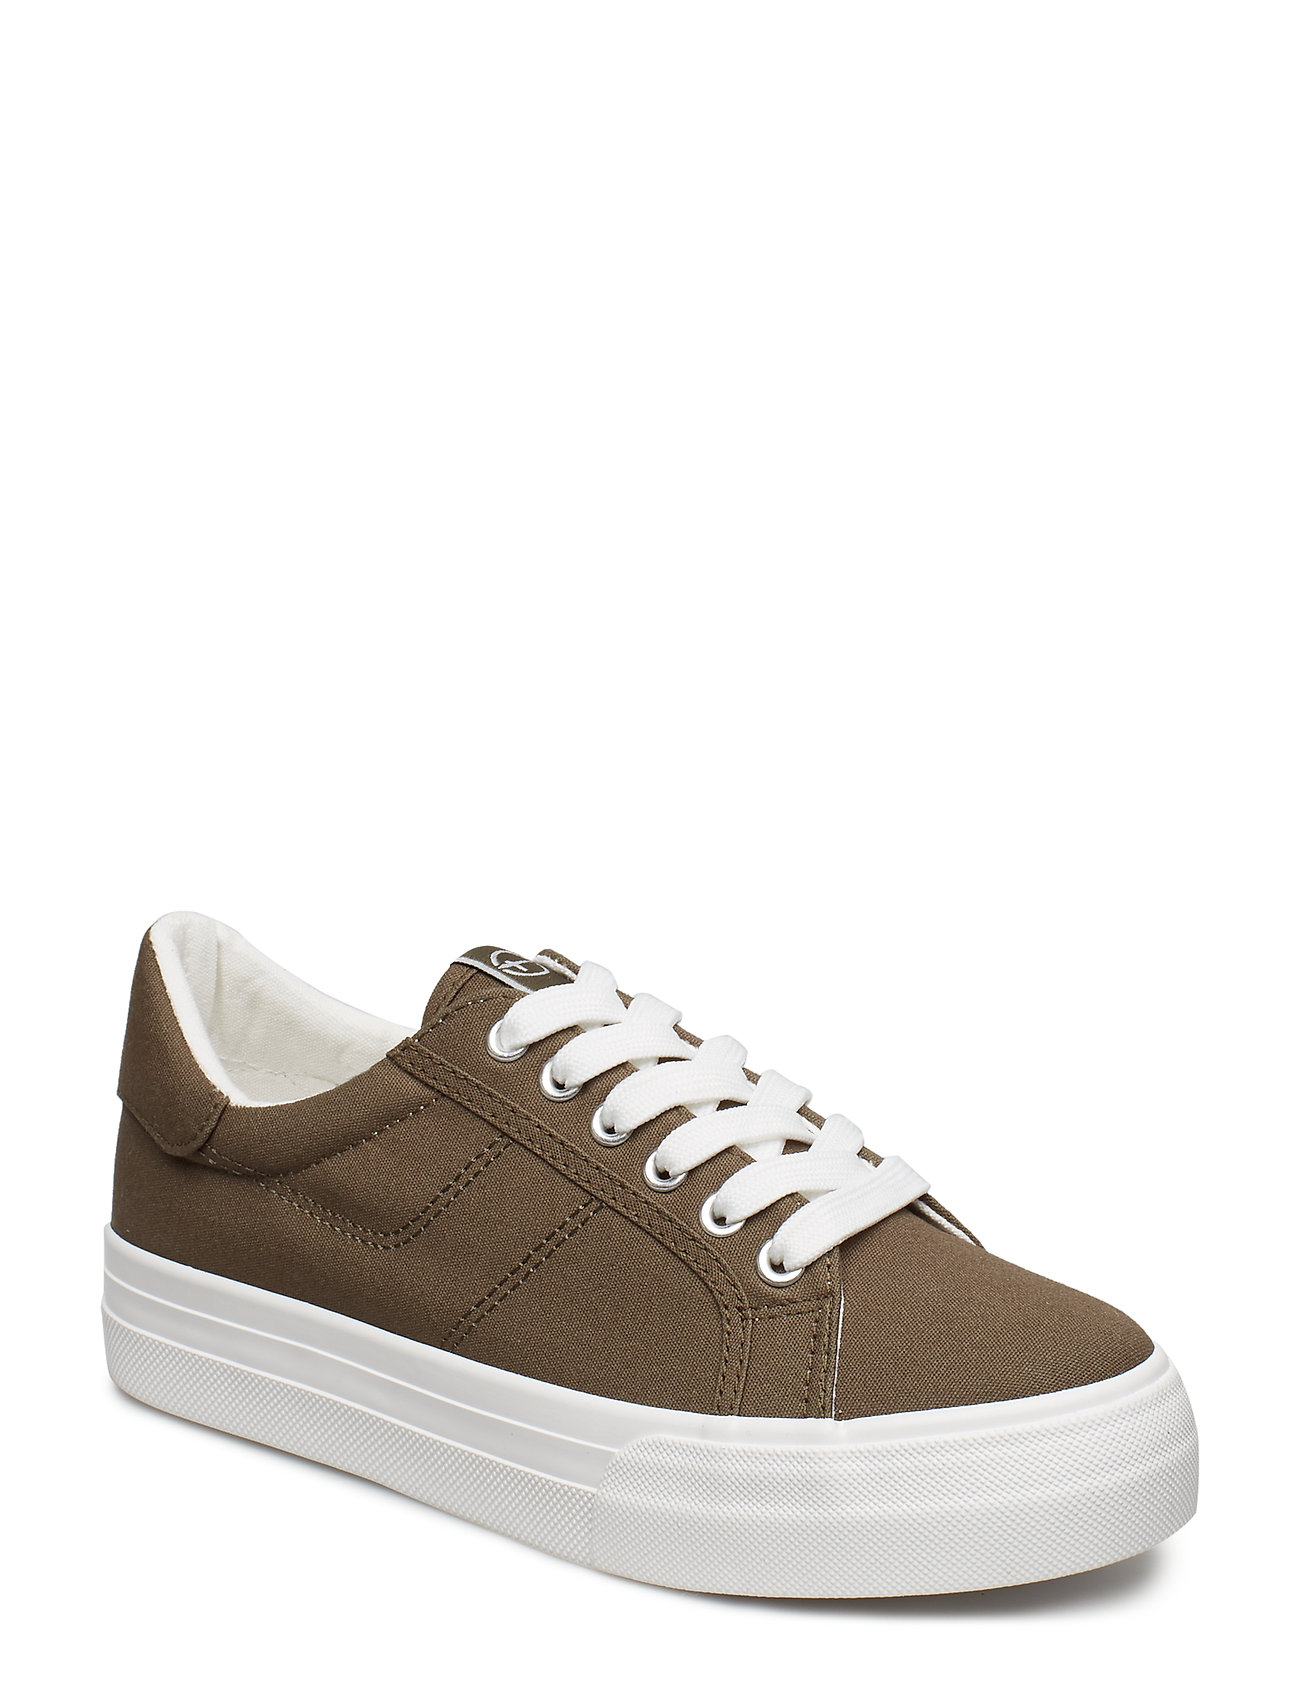 Tamaris Woms Lace-up - OLIVE